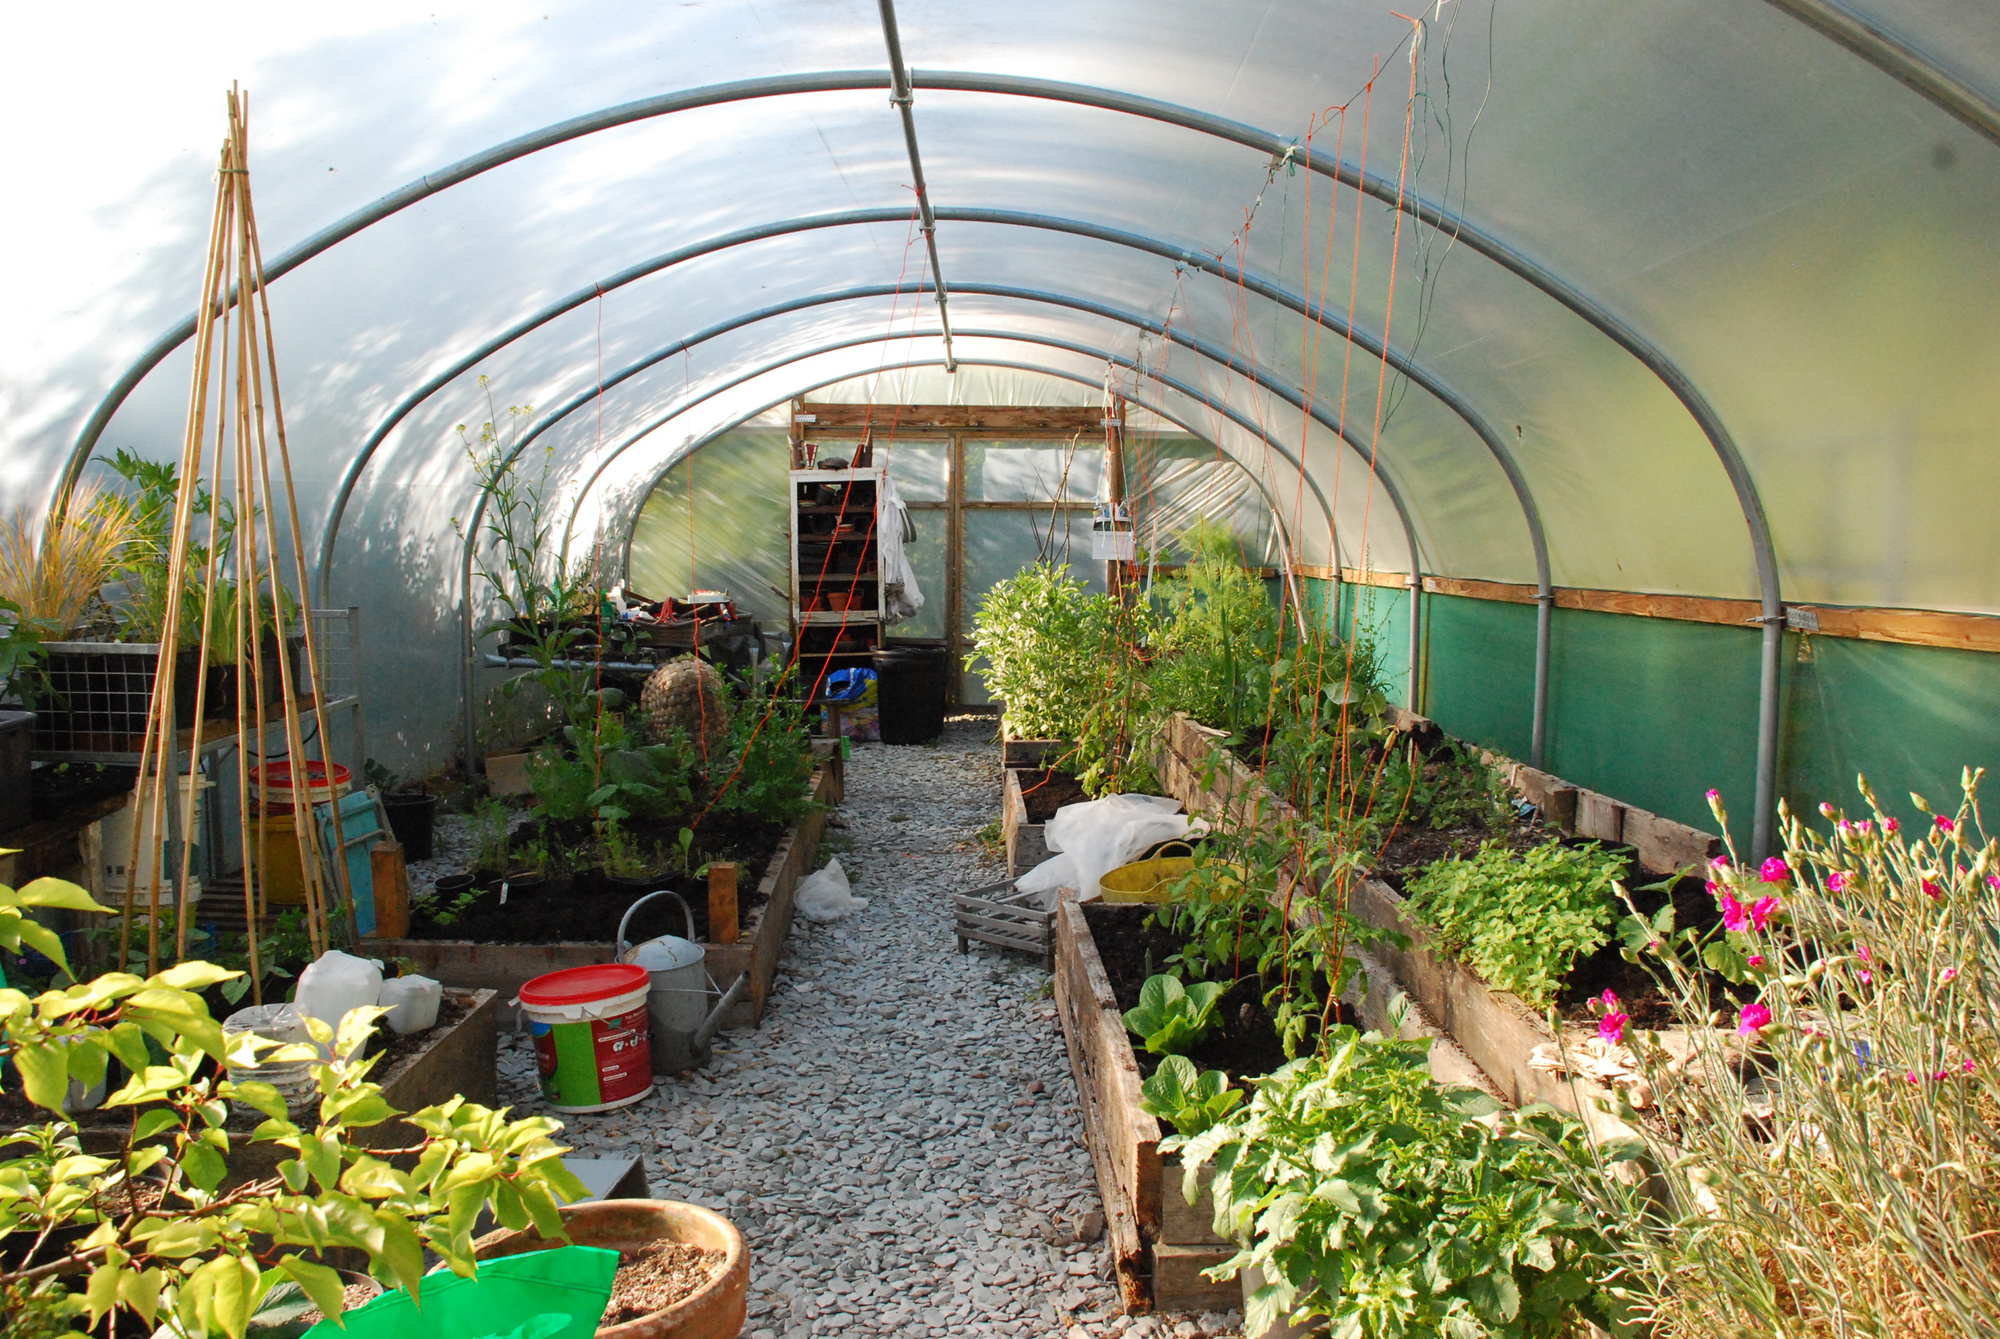 In the polytunnel in late May - broadbeans in flower, salads, young courgettes, cucumbers, pumpkins and tomatoes